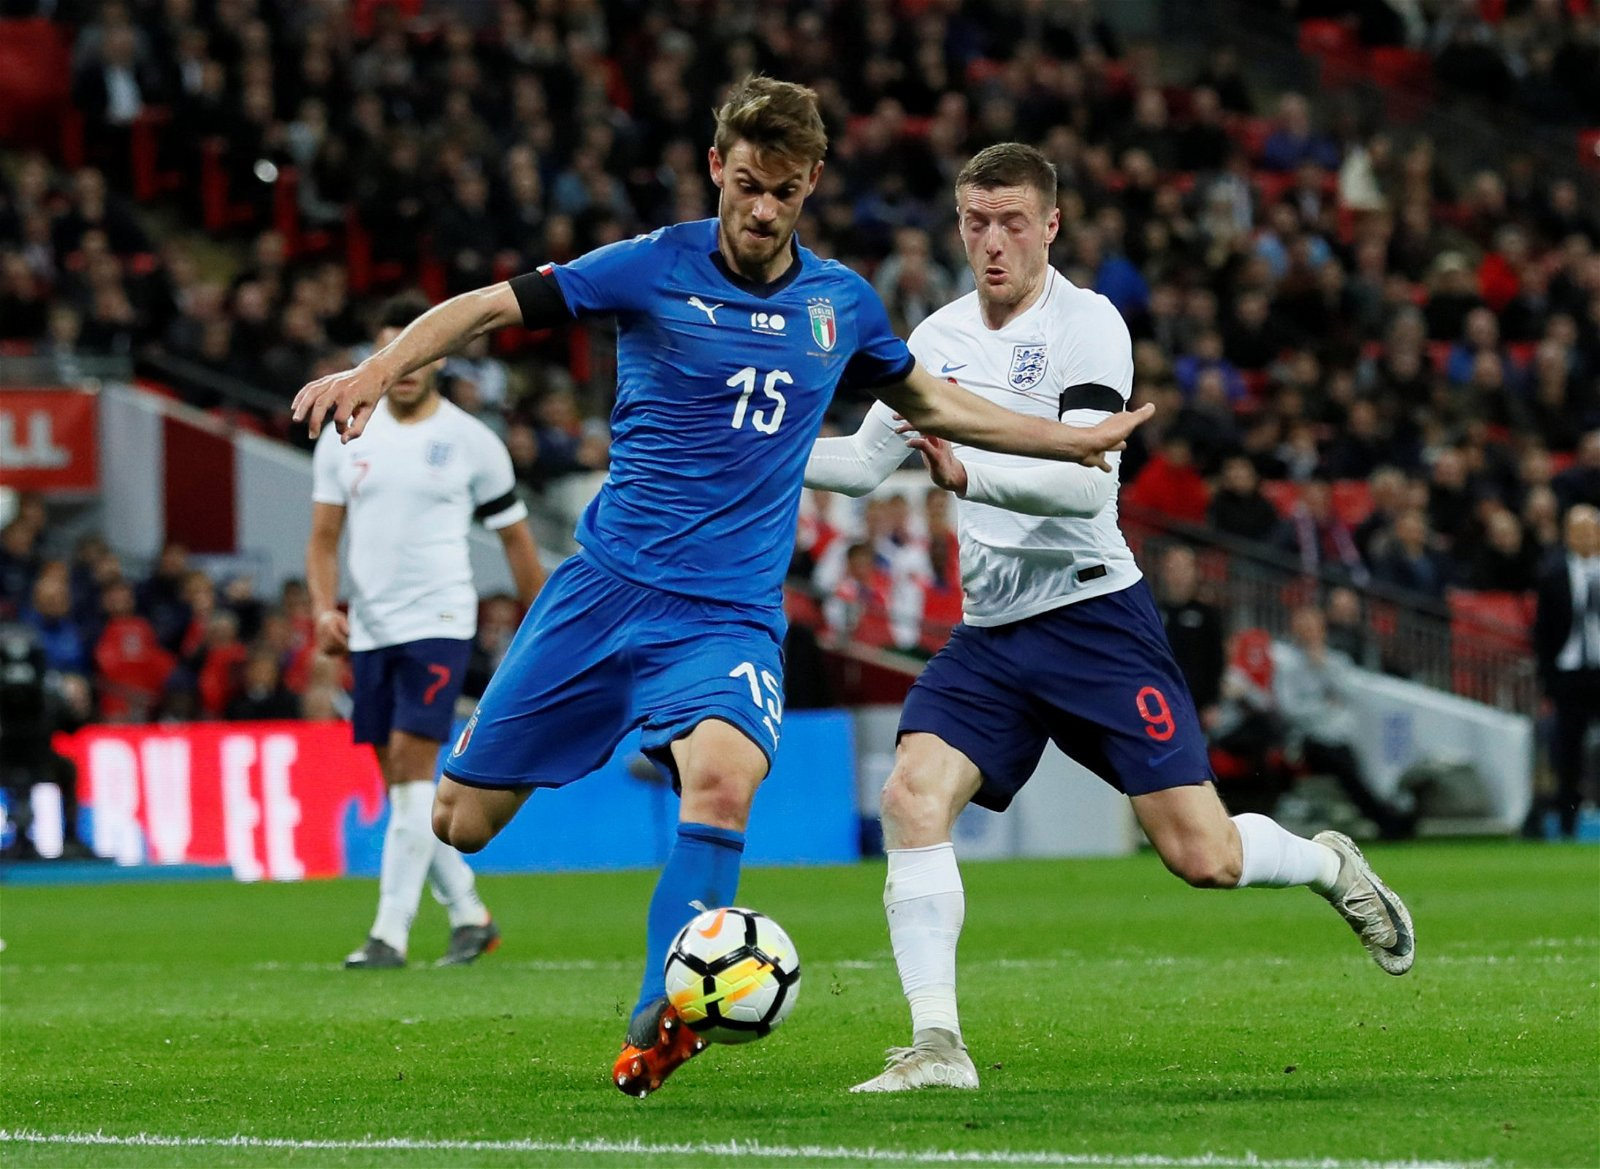 Daniele Rugani in action for Italy